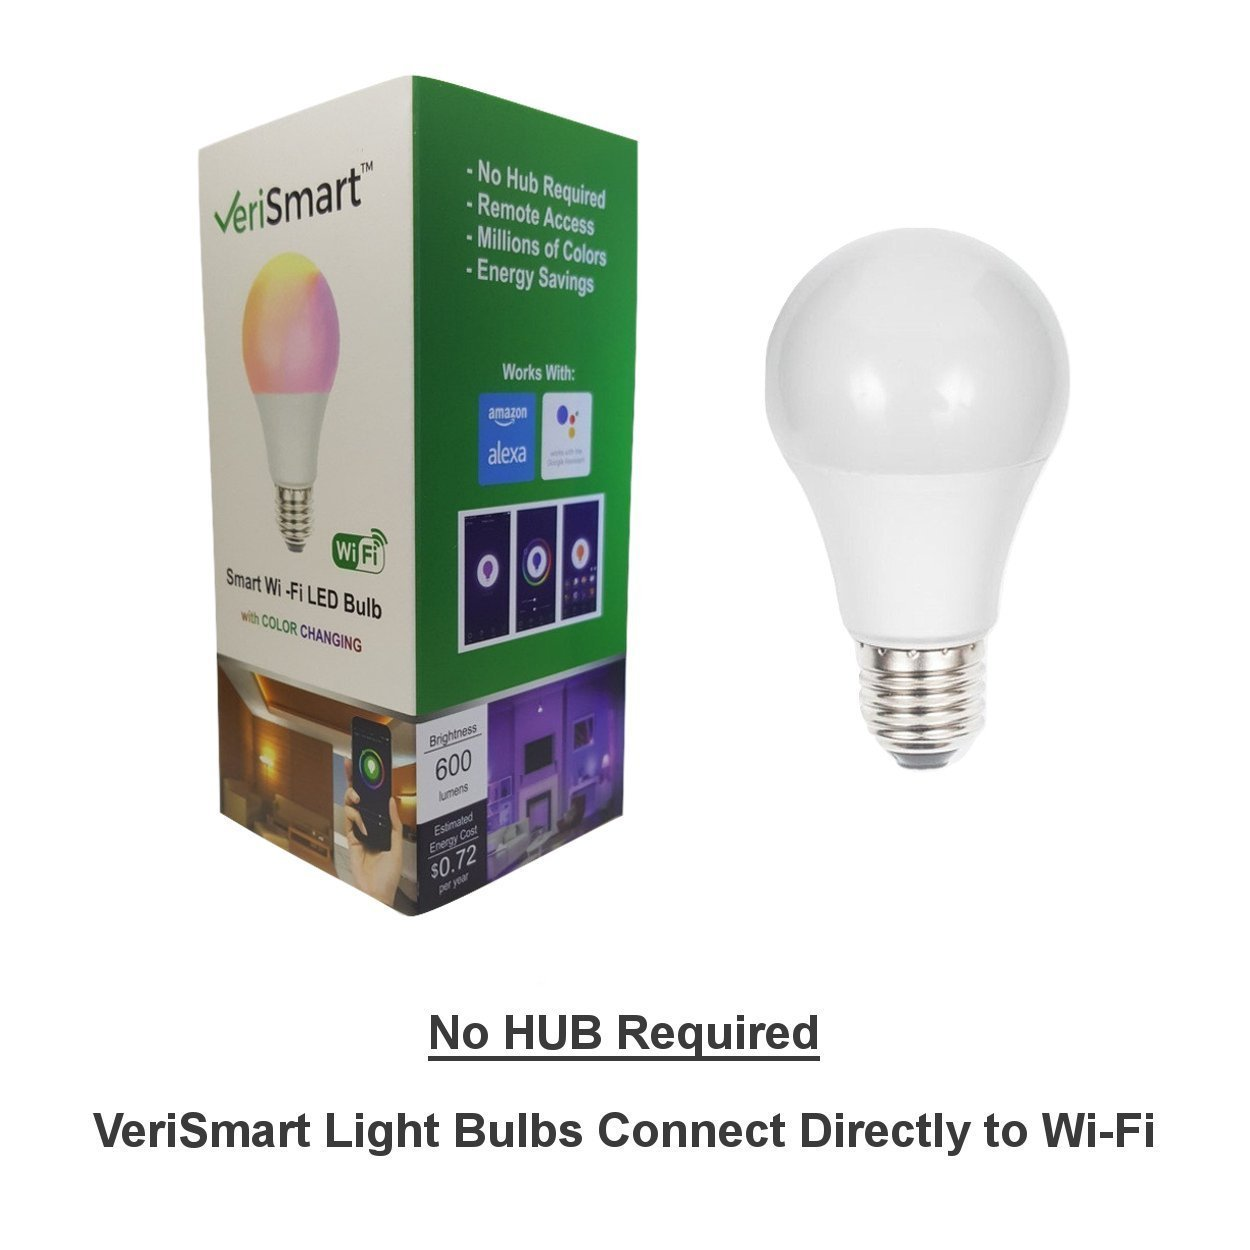 VeriSmart Wi-Fi LED Smart Light Bulb - Works with GOOGLE HOME and AMAZON ALEXA, Free APP, (7W) 60W Equivalent, 6000K, No HUB Required, CE & FCC Certified by VeriSmart (Image #2)